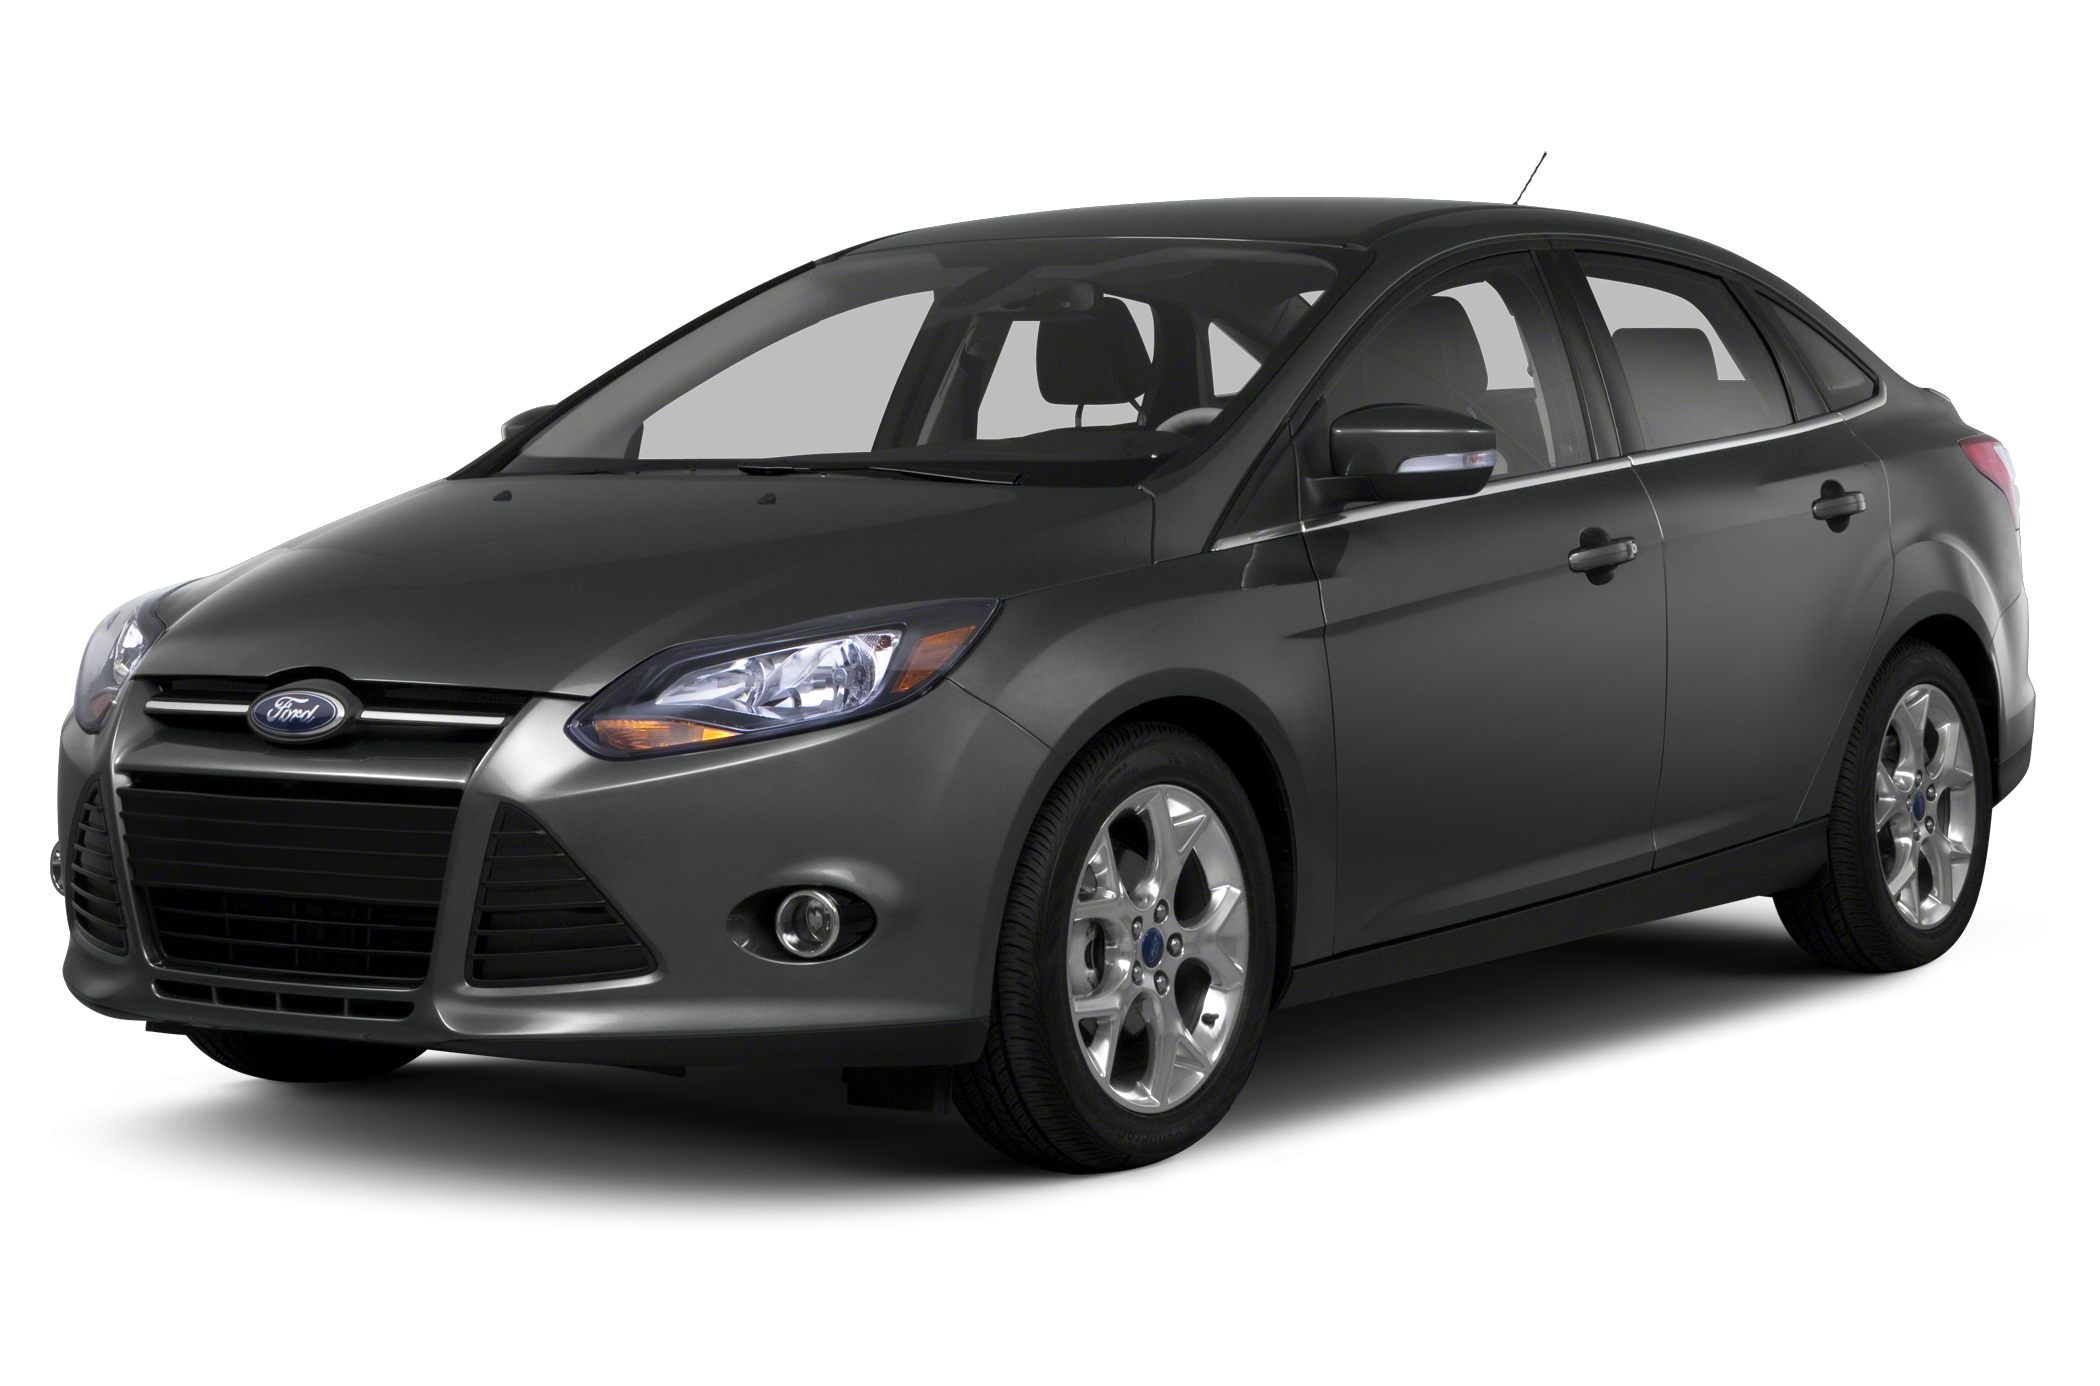 2013 Ford Focus SE Sedan for sale in Wilson for $13,893 with 35,925 miles.